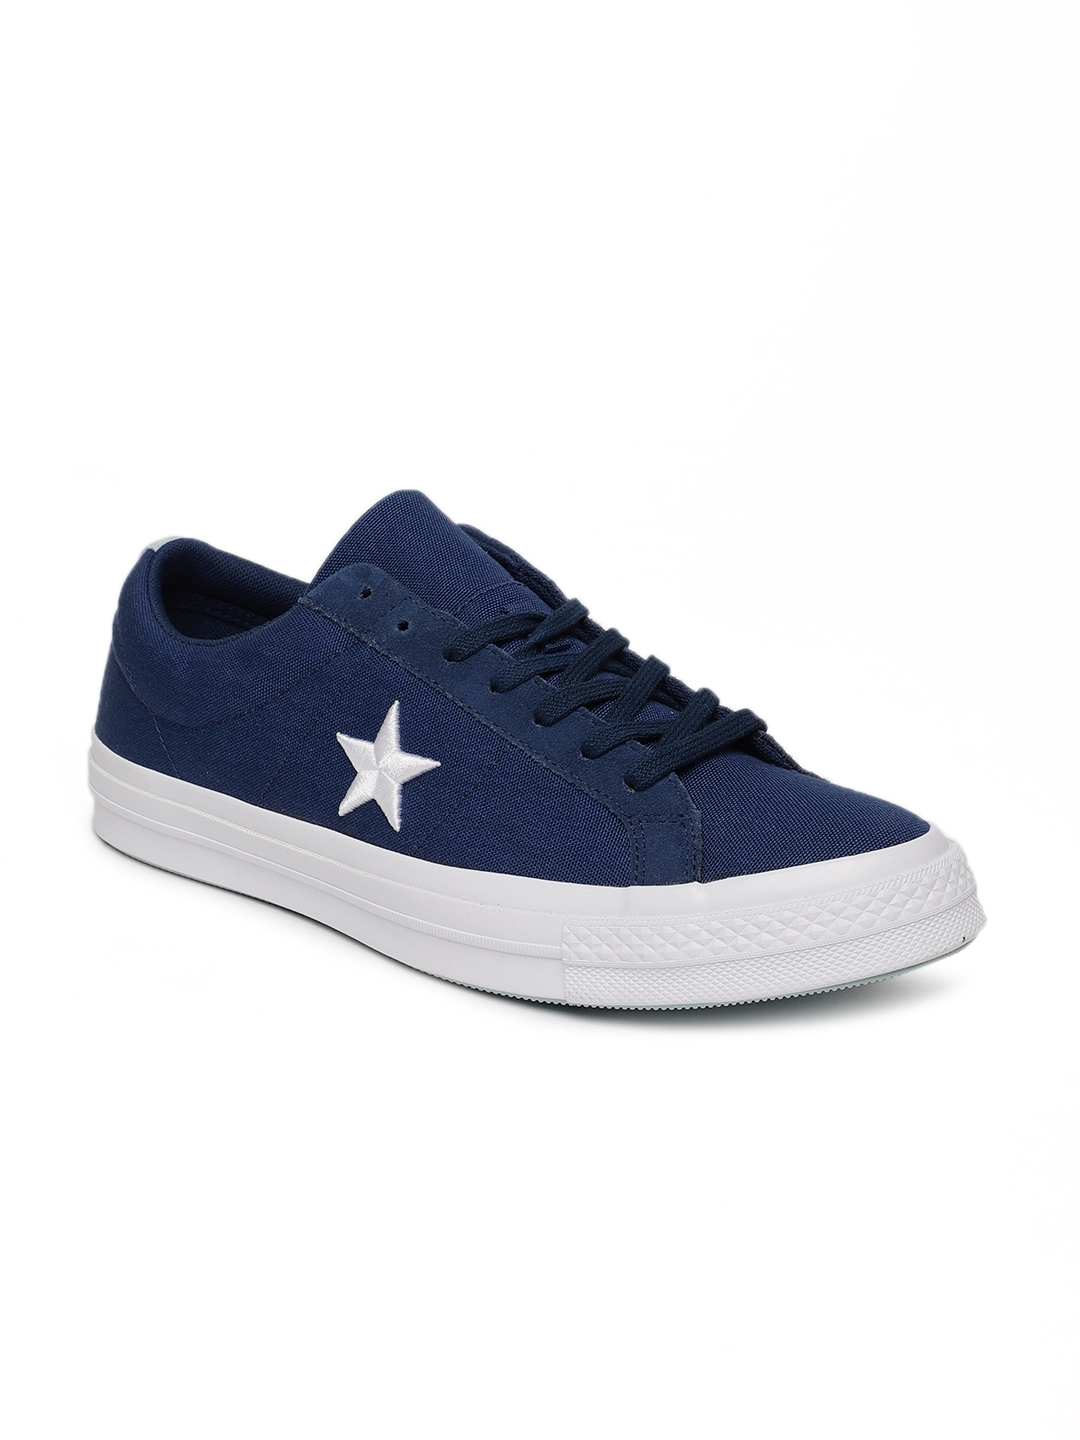 95f9c725d103 Buy Converse Men Navy Blue Sneakers - Casual Shoes for Men 2419594 ...